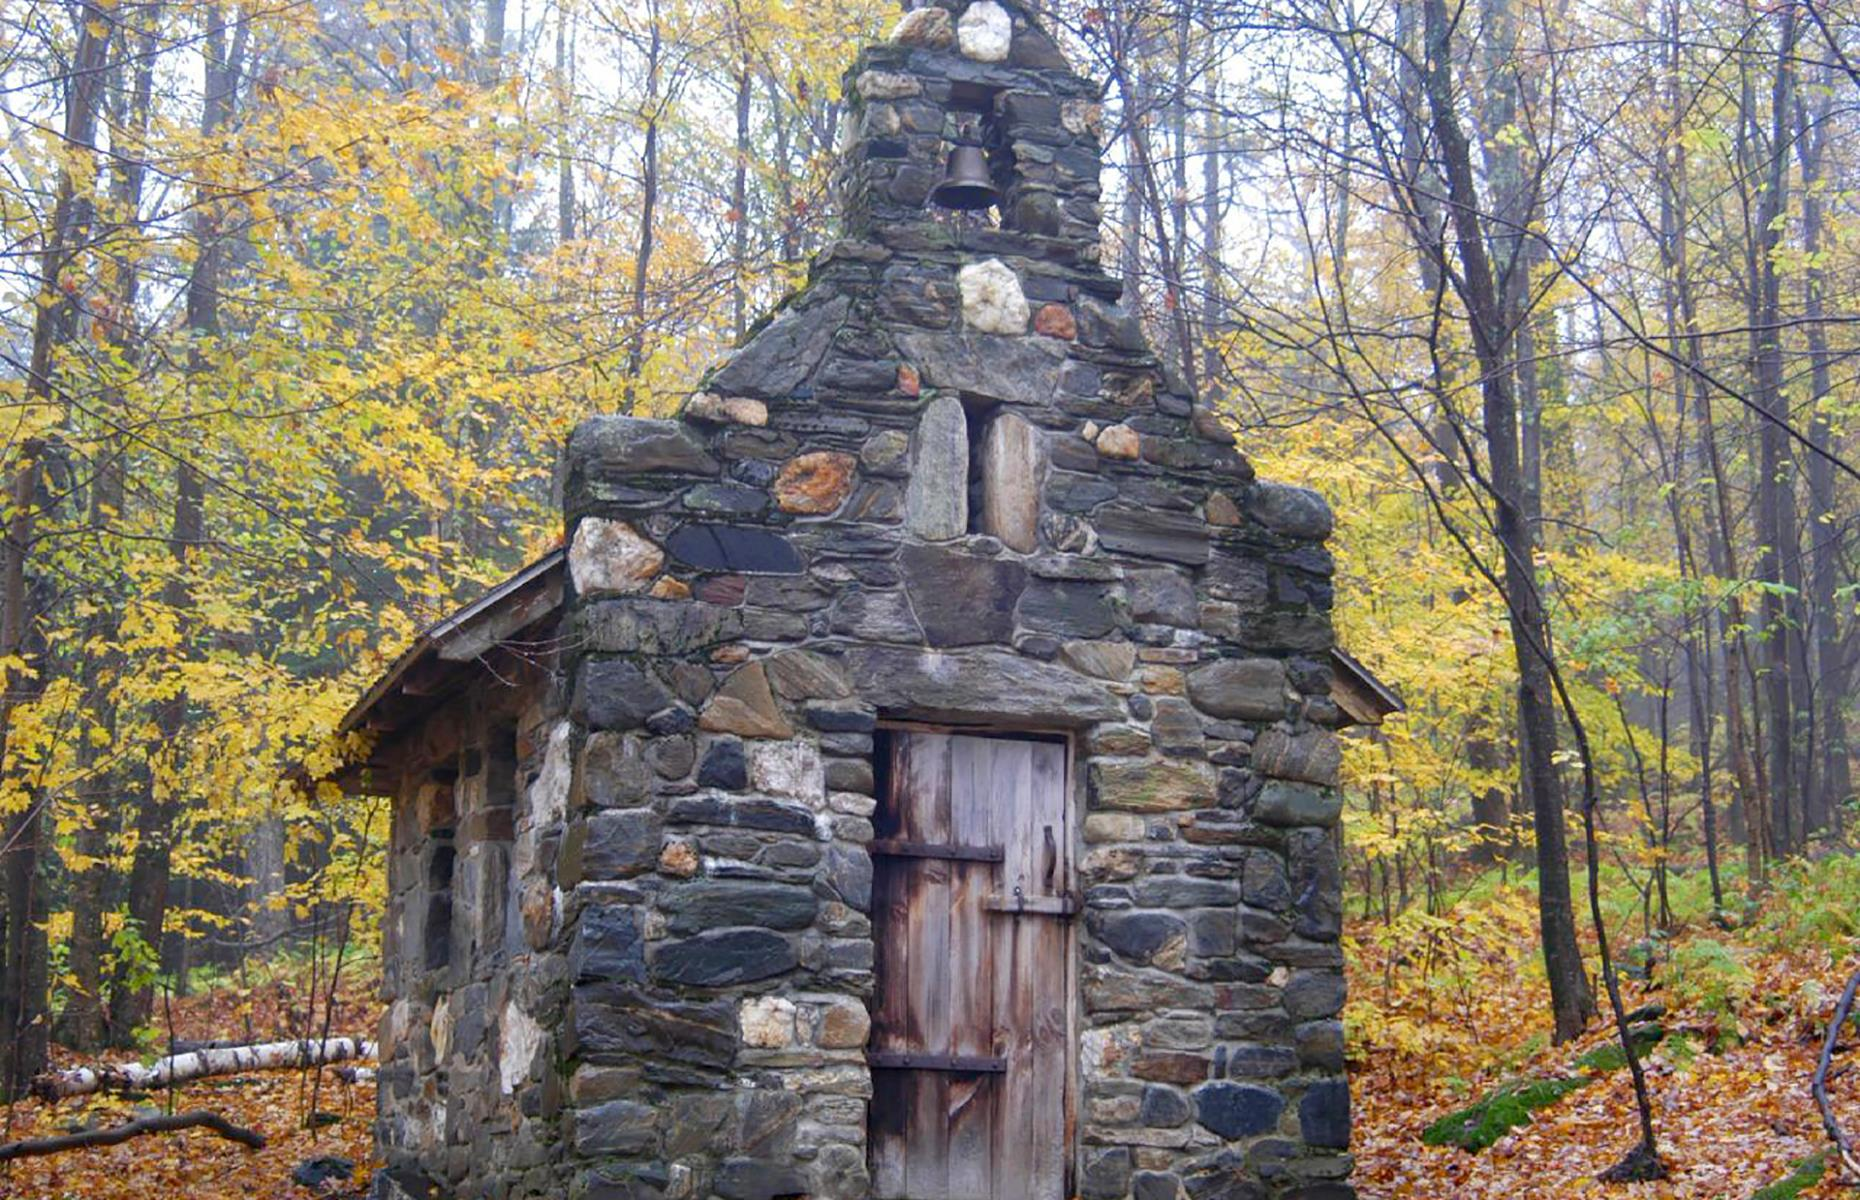 Slide 47 of 52: Compared to the many fading ghost towns in the USA's west, Vermont has few abandoned buildings, but a dinky stone chapel can be found in the wooded grounds of the Trapp Family Lodge in the pretty town of Stowe. The Austrian-style lodge is still owned and operated by the von Trapp family, who moved to Stowe in the 1940s and opened this property to guests in 1950. A hike through the grounds leads to the picturesque chapel, reportedly built as a tribute to Second World War soldiers.